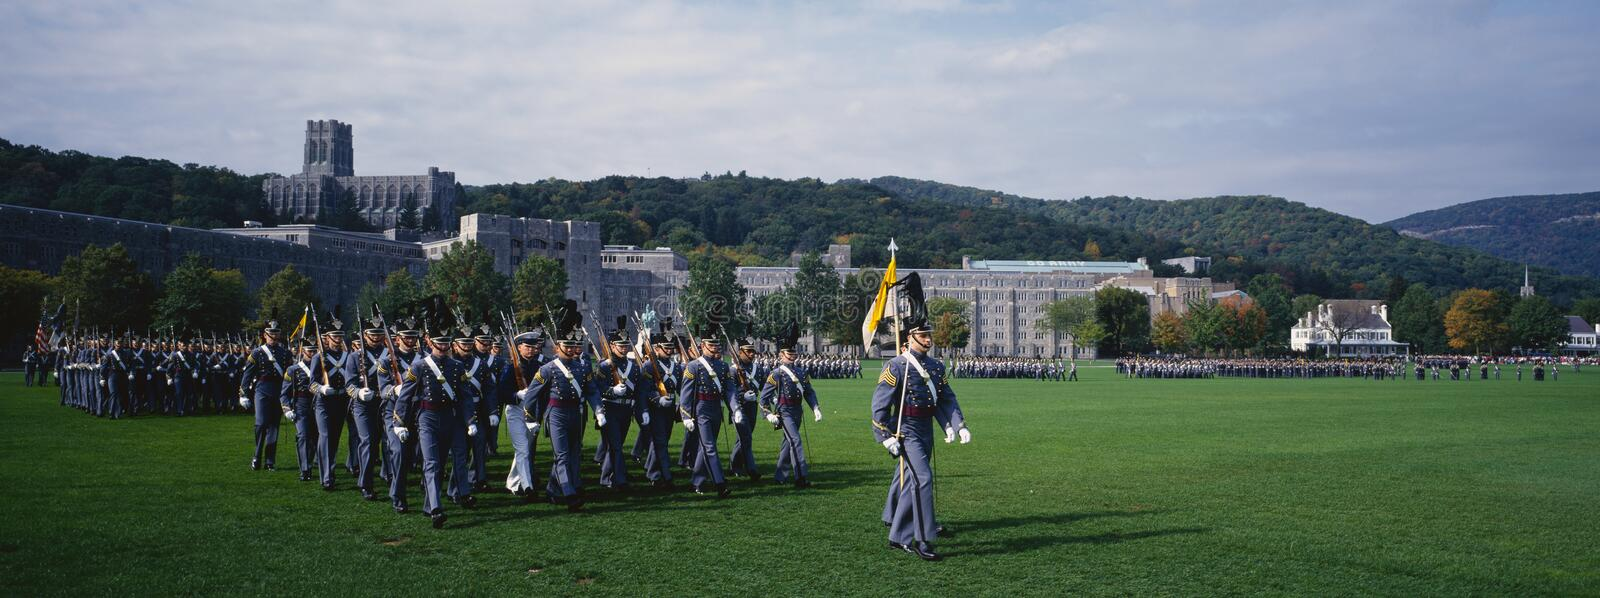 Download Homecoming Parade Of Cadets Editorial Photography - Image: 23160422